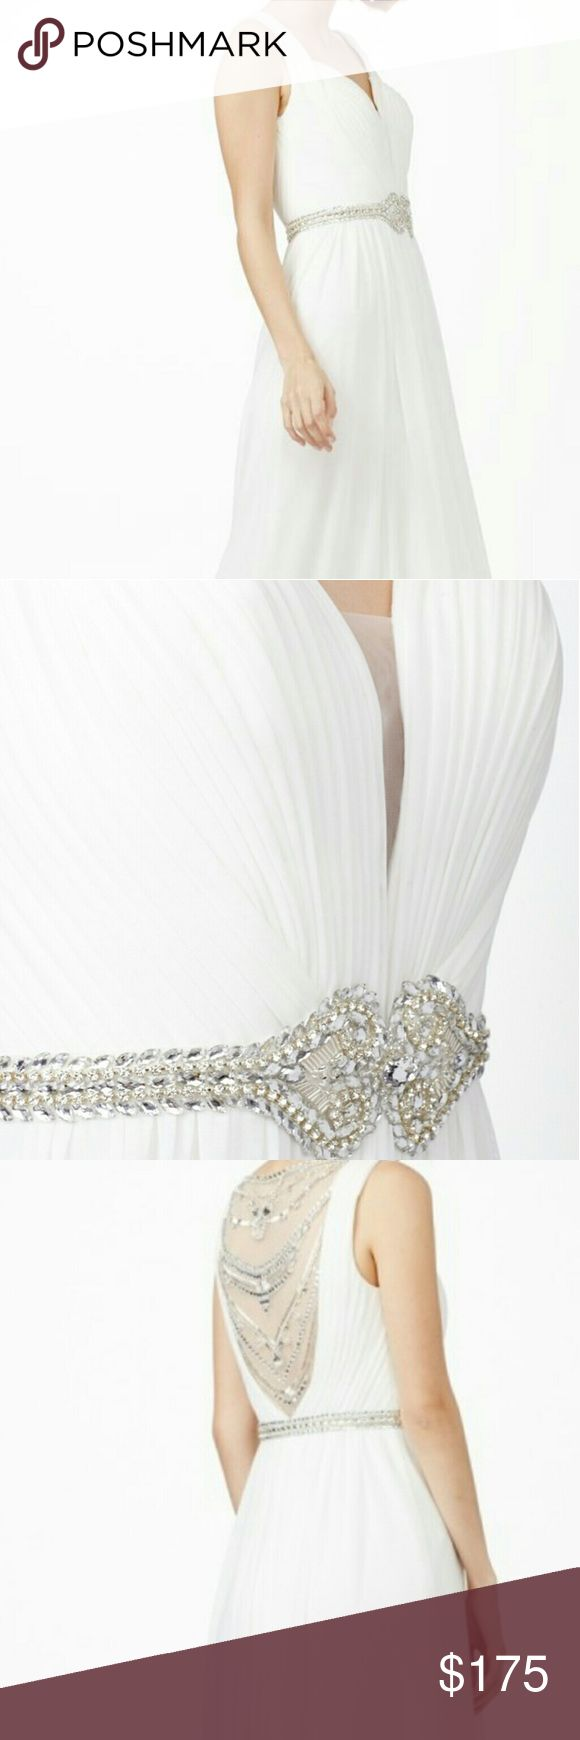 Jovani Wedding Dress Stretchy & comfy mesh material with a sweetheart neckline that creates a thin V cut above a gorgeous belt of rhinestones. The low back is coated with a sheer material with beautifully placed rhinestones throughout. Jovani Dresses Wedding